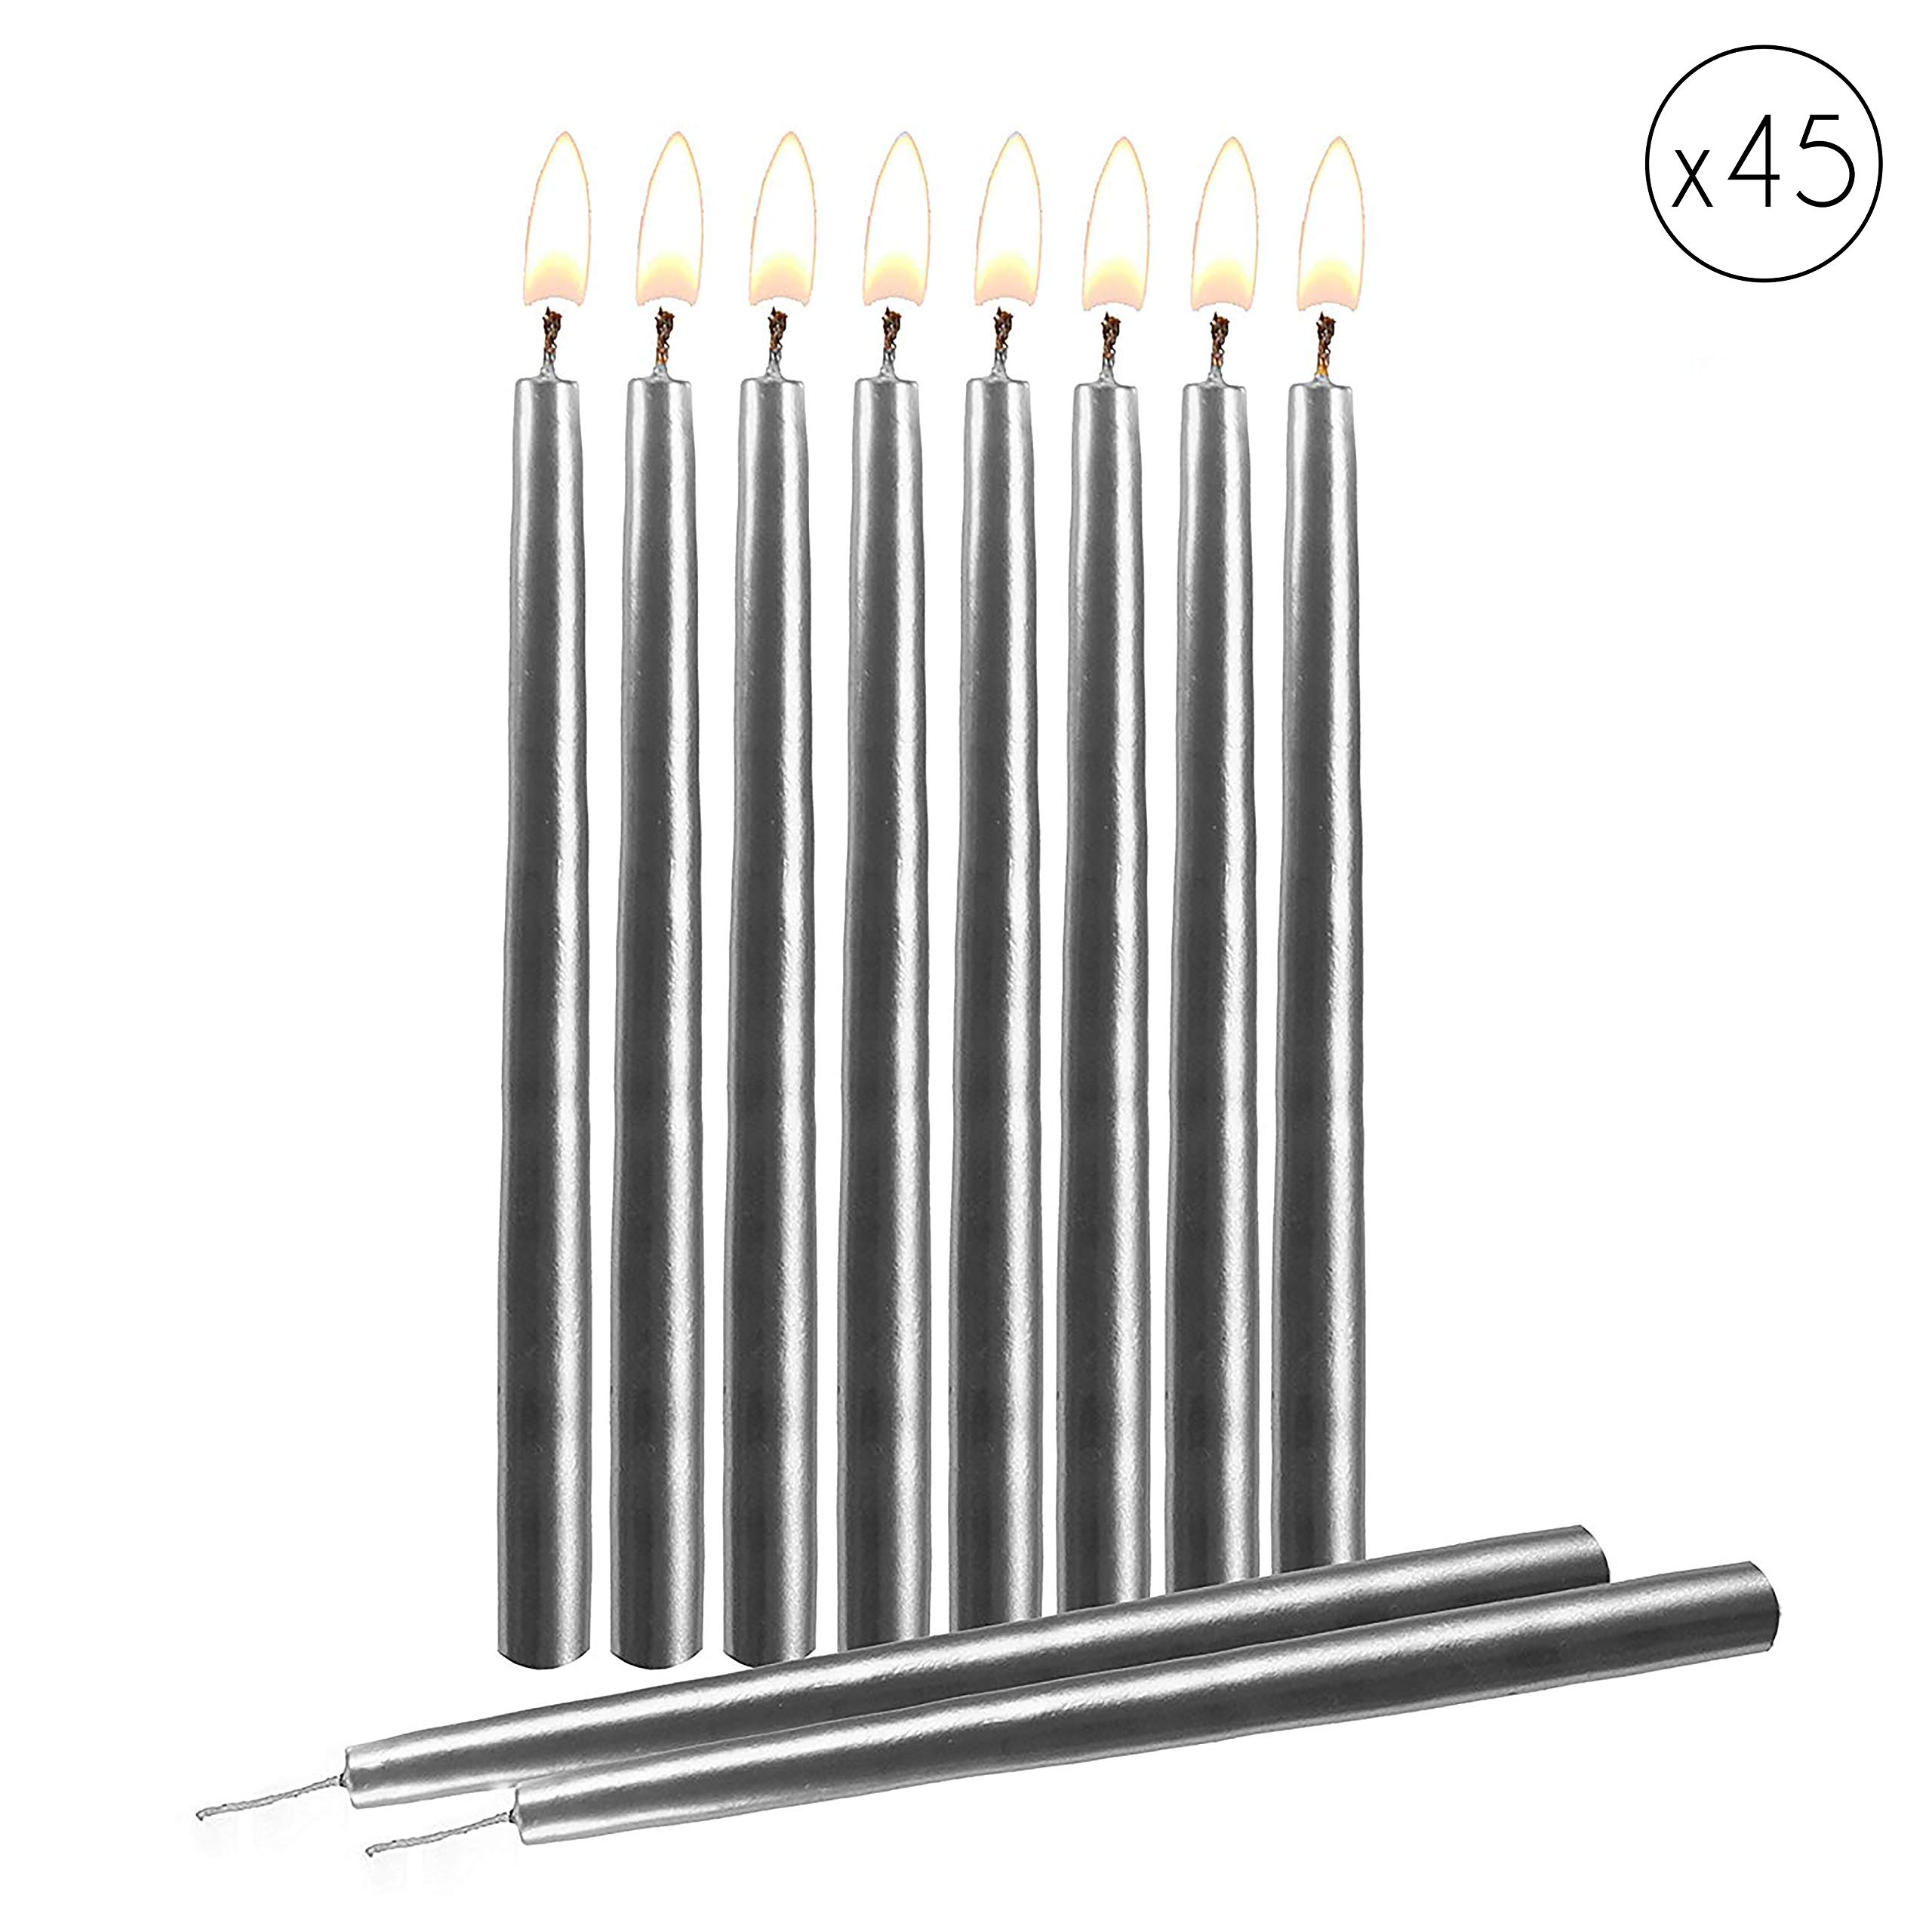 "Silver Birthday Candles 45 Pack - Dripless Decorating Candle for Centerpiece Holders, Cakes and Parties - Elegant Taper Design, 5.5"" Tall - by Hyoola Candles"